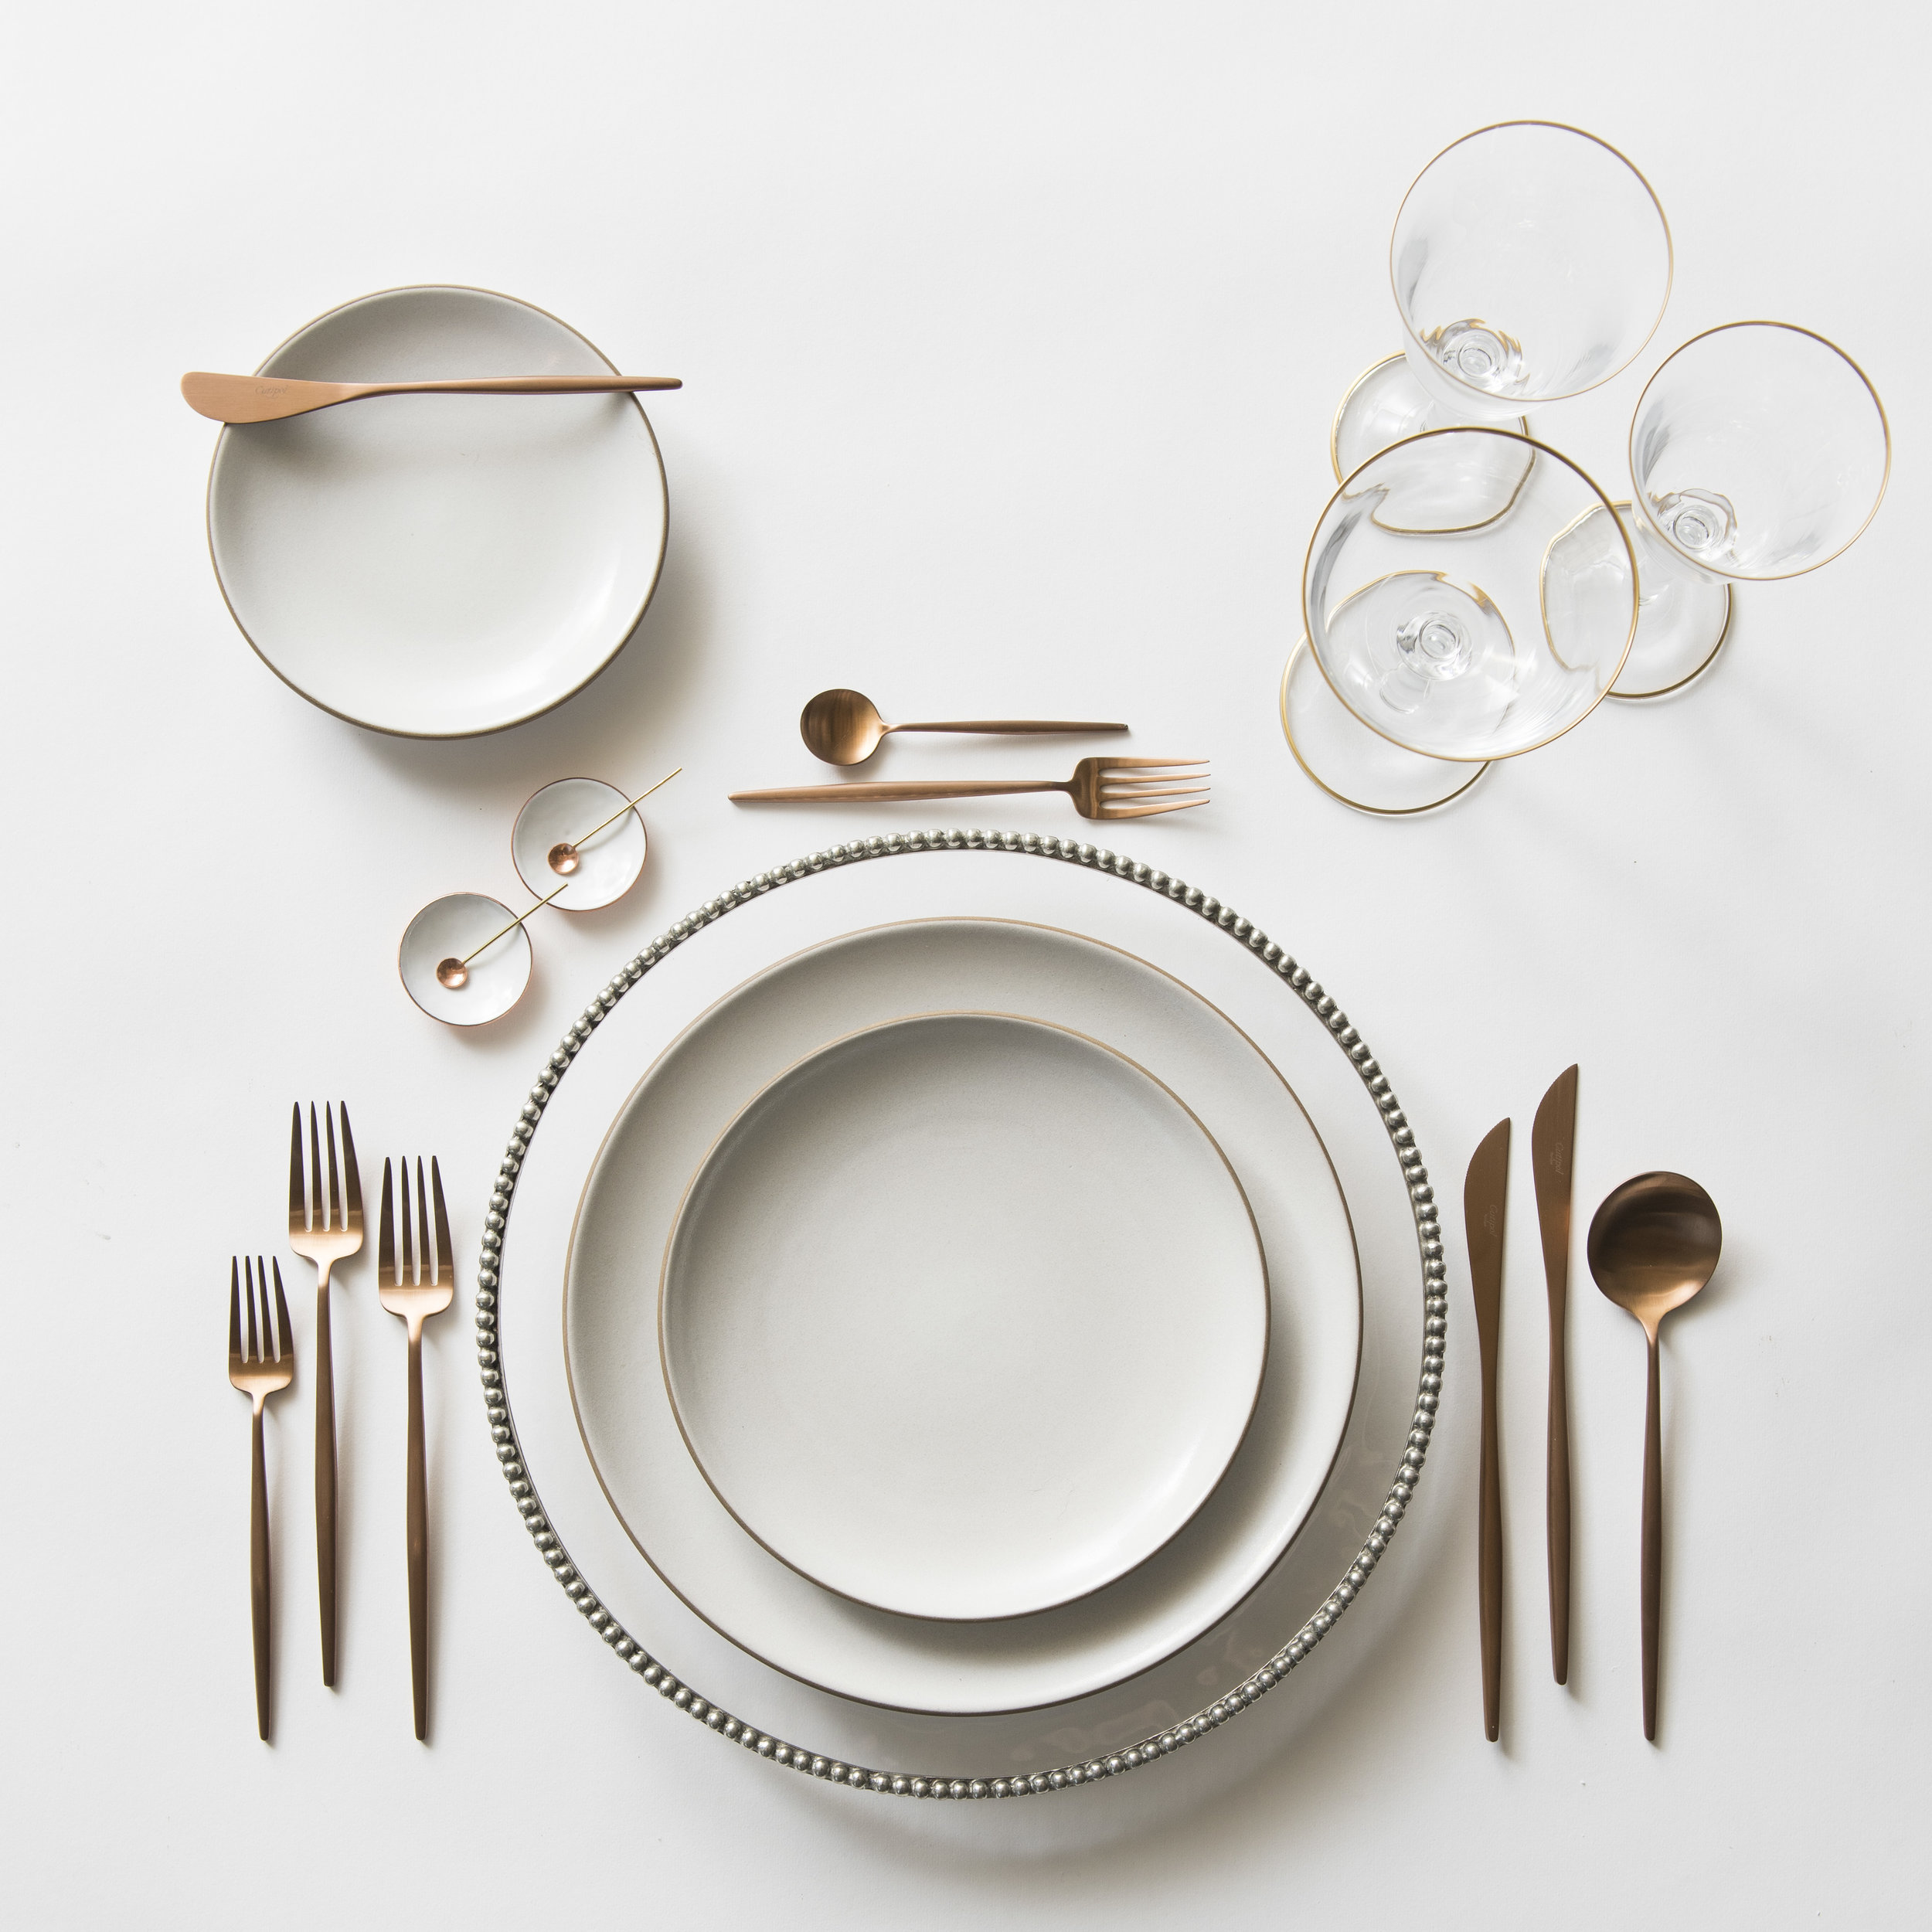 RENT: Pav é Glass Chargers in Pewter + Heath Ceramics in Opaque White + Moon Flatware in Brushed Rose Gold + Chloe 24k Gold Rimmed Stemware + White Enamel Salt Cellars + Tiny Gold/Copper Spoons   SHOP: Moon Flatware in Rose Gold + Chloe 24k Gold Rimmed Stemware + White Enamel Salt Cellars